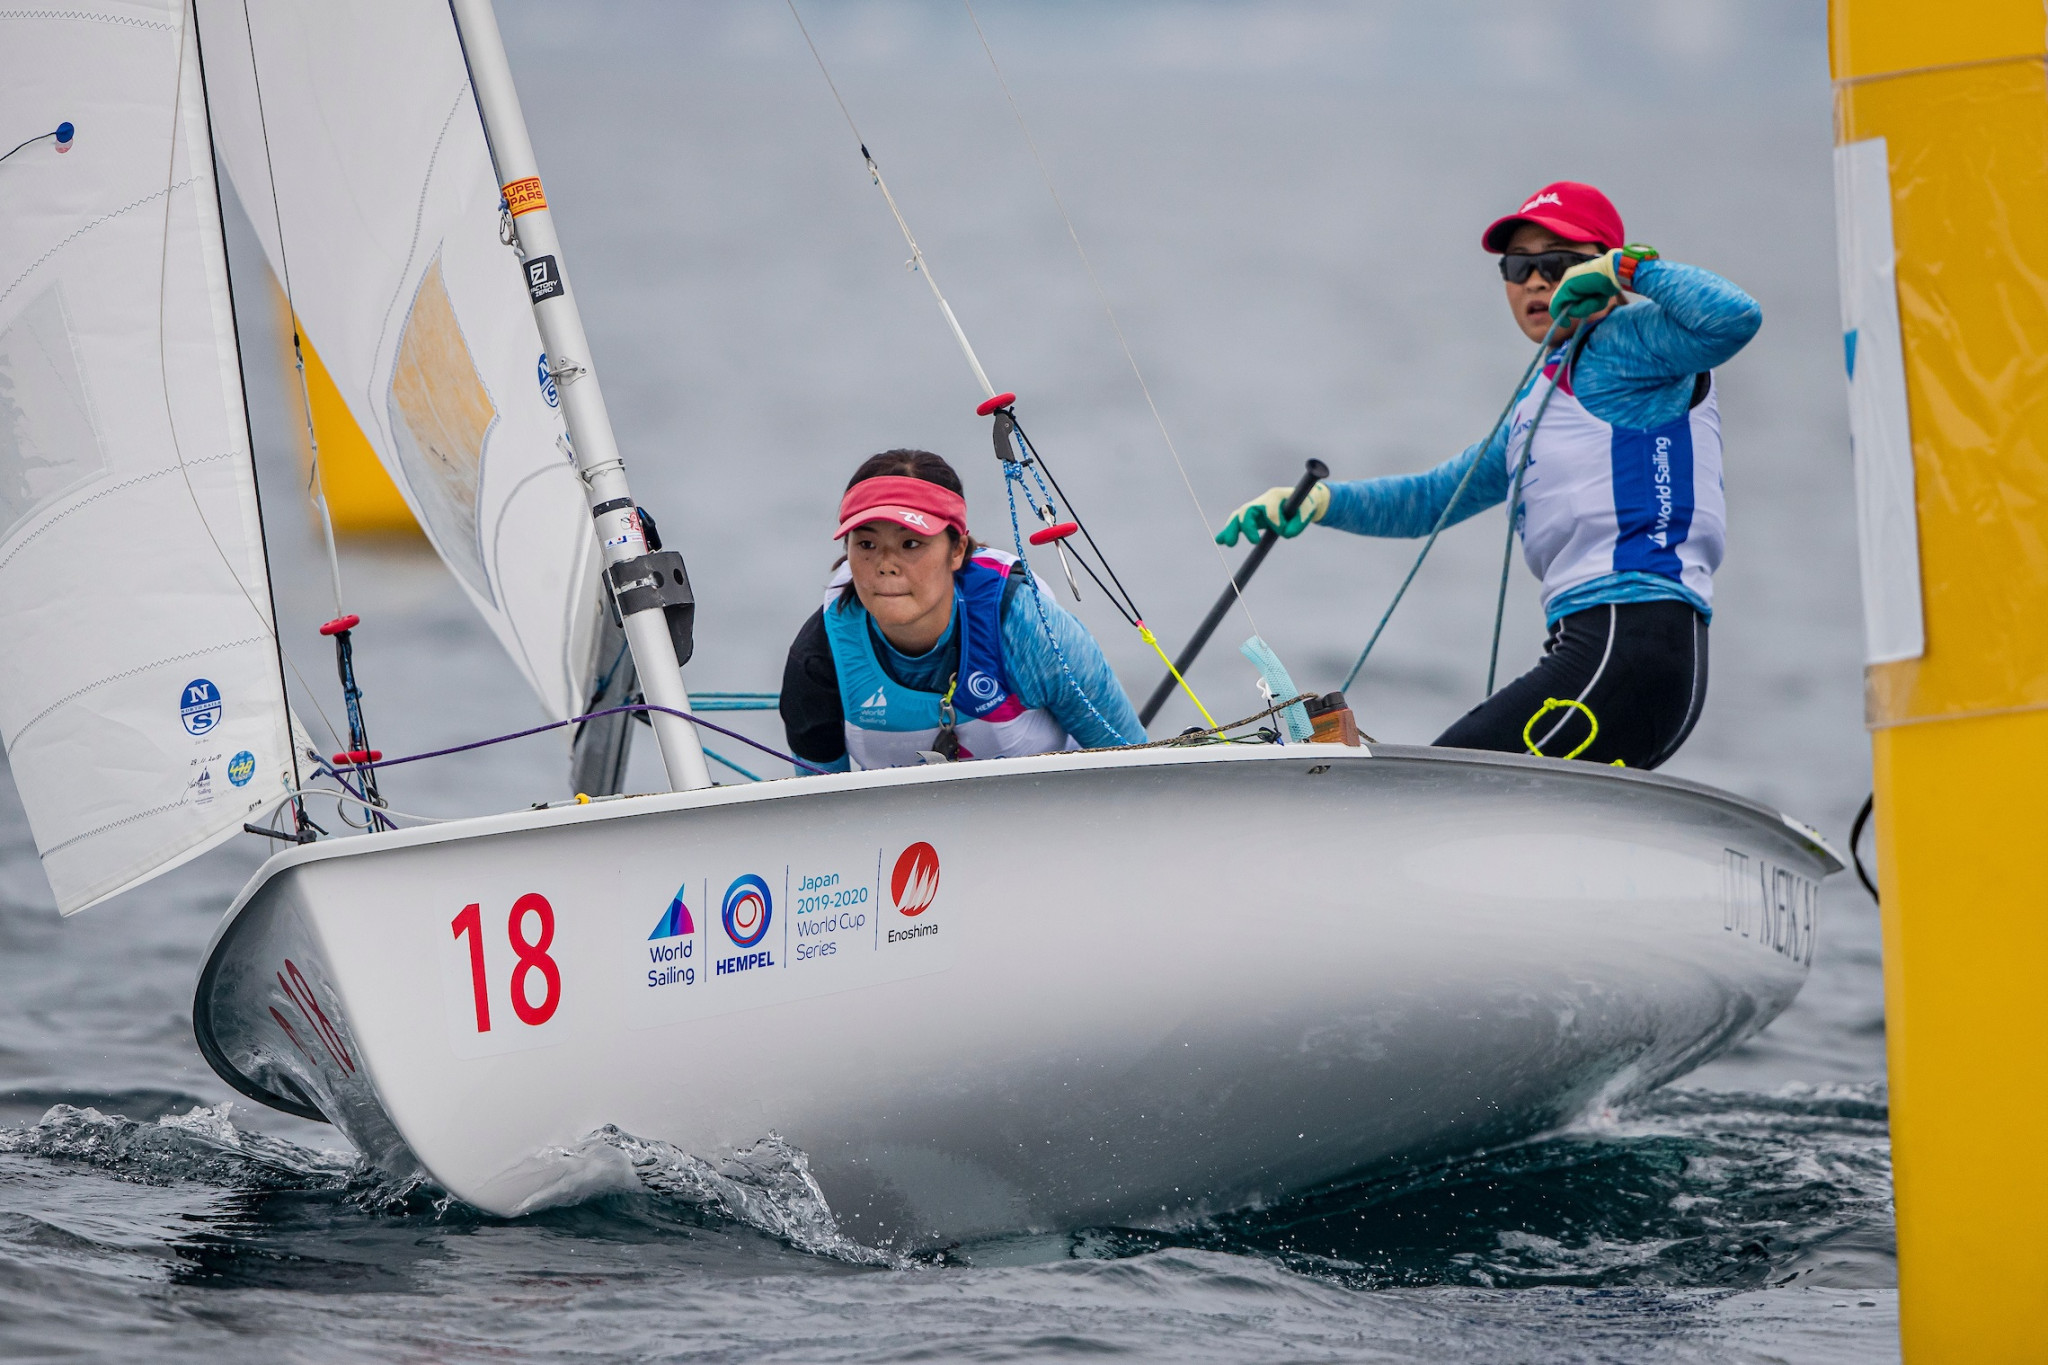 Yuki Hayashi and Chika Nishidai lead the women's 470 fleet on home water ©World Sailing